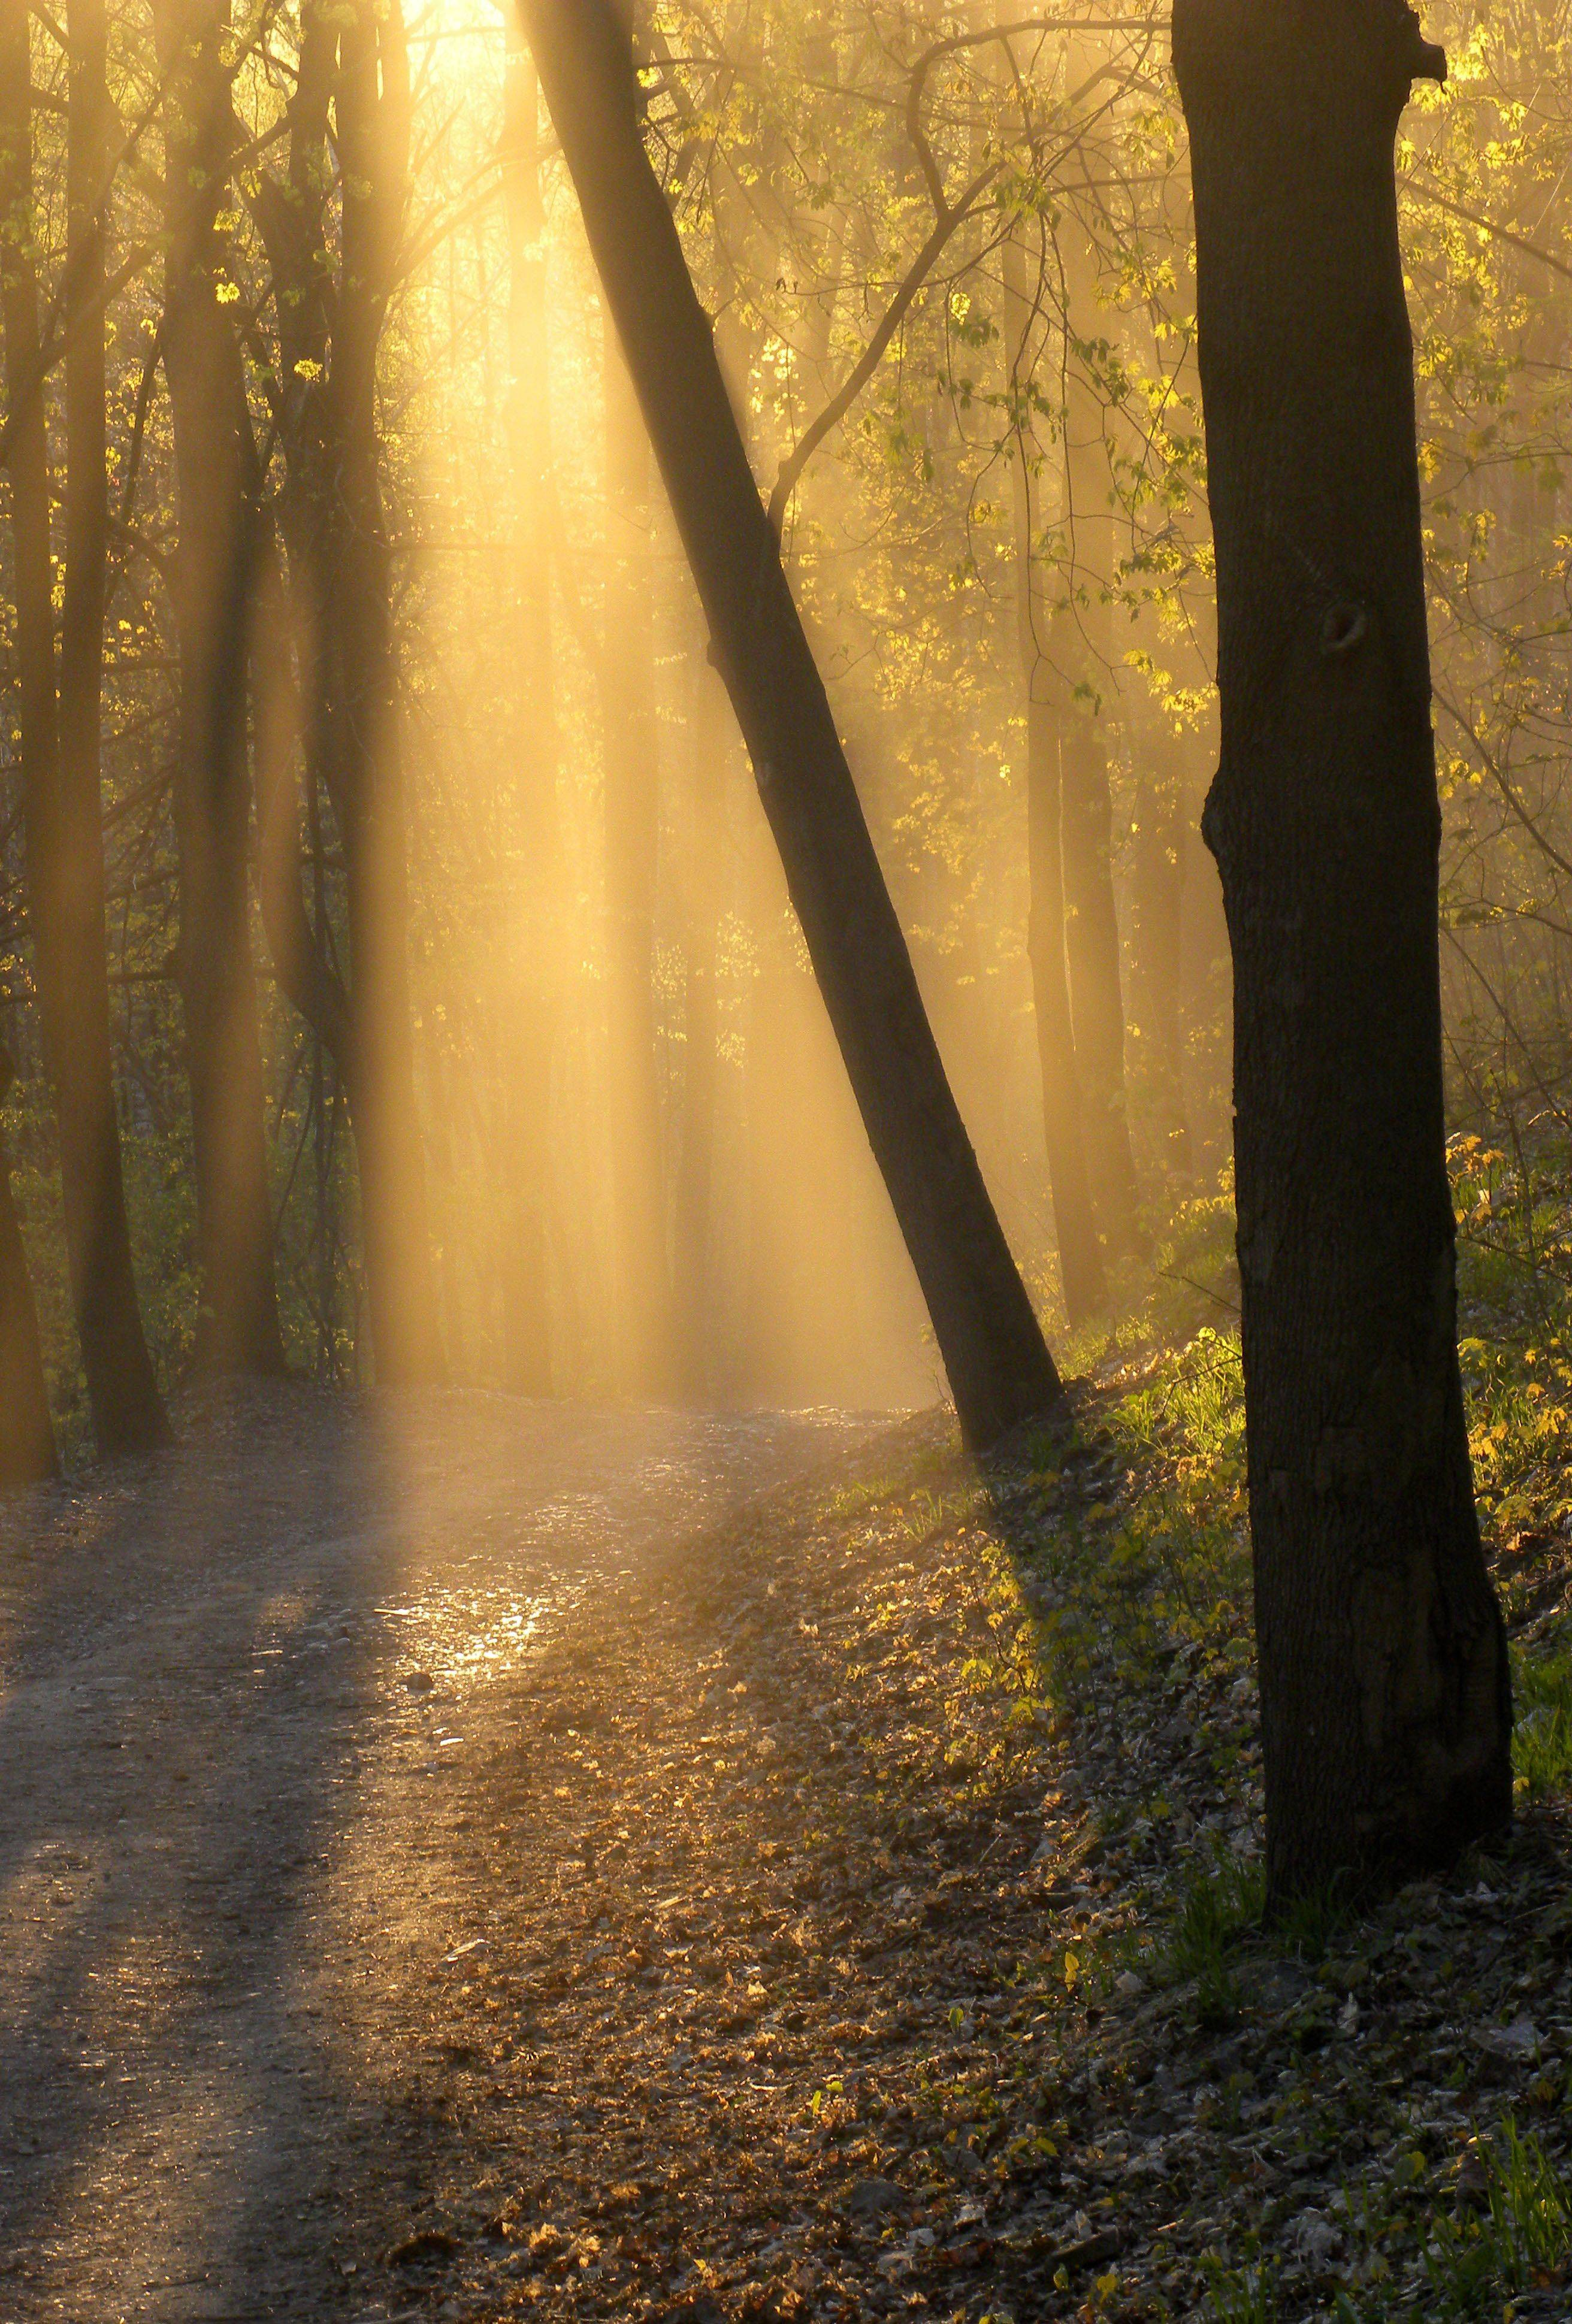 Sun streaks through the forest on a sunny afternoon after a car traveled down a dirt road, leaving behind a mystical dust cloud.